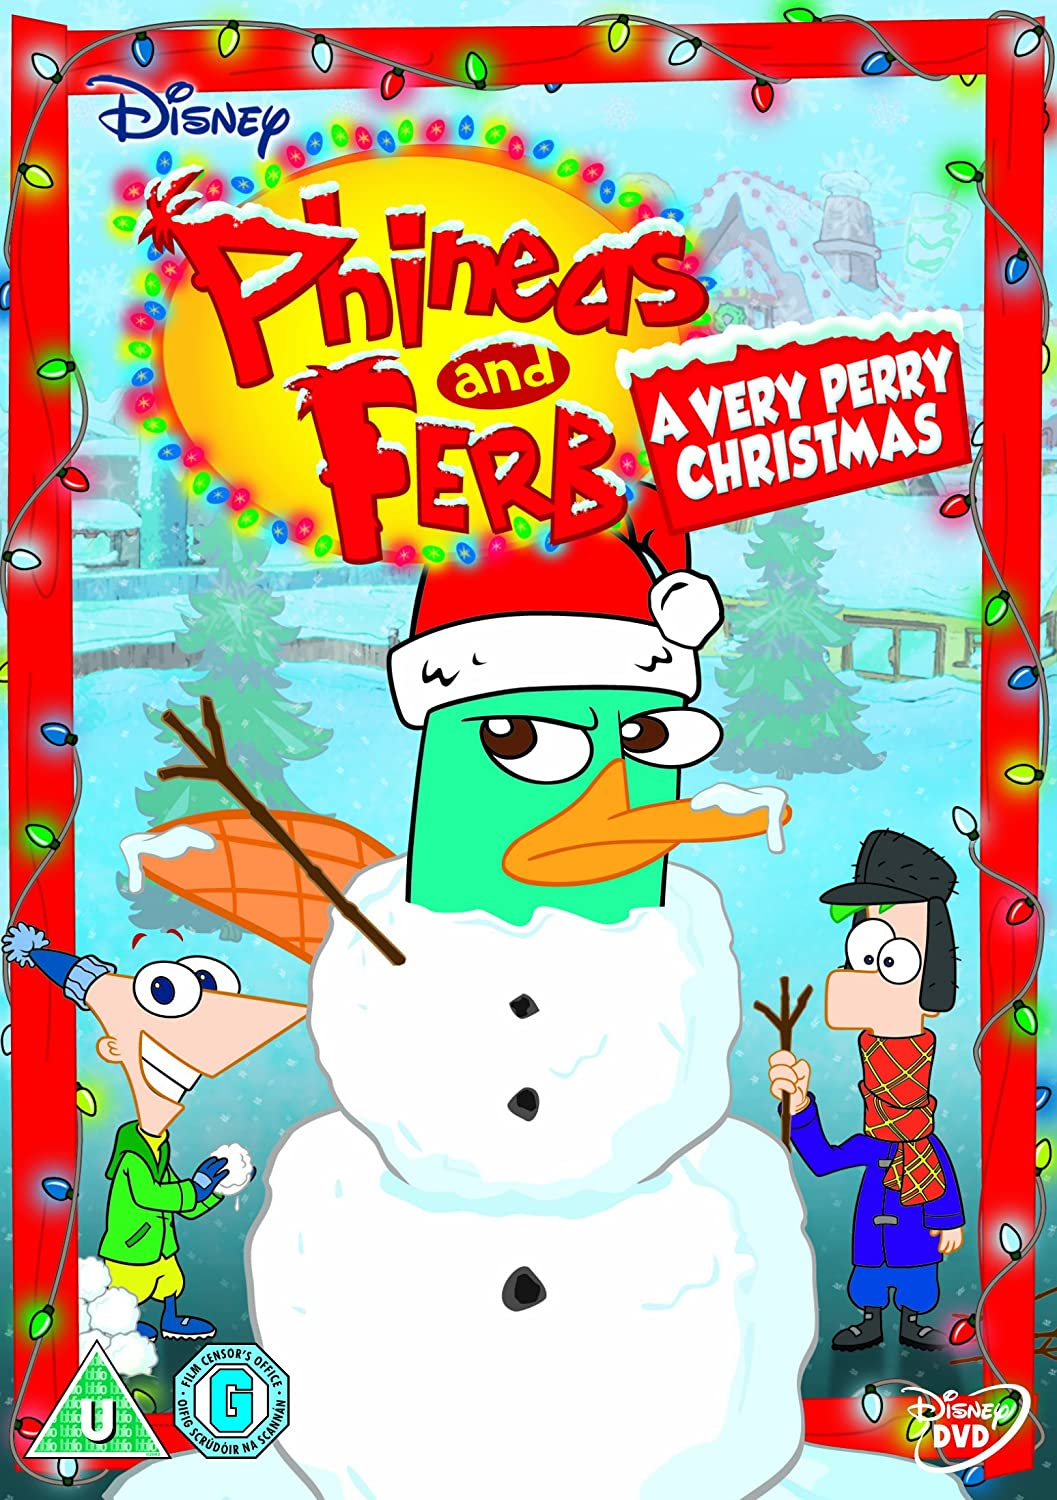 Phineas & Ferb: Across the 2nd Dimension [DVD]: Amazon.co.uk: Dan ...